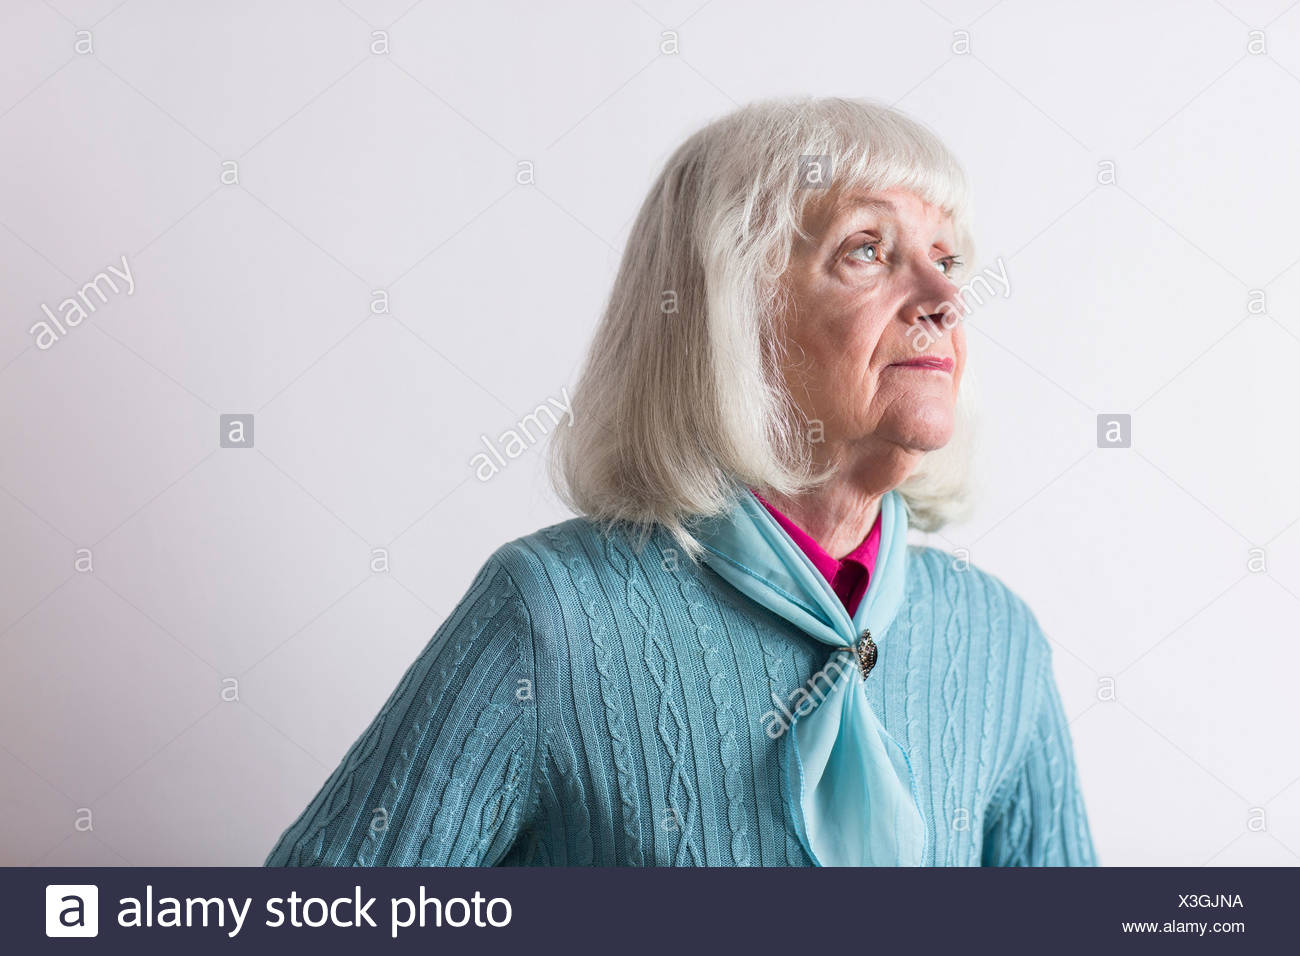 Senior woman with grey hair looking away - Stock Image